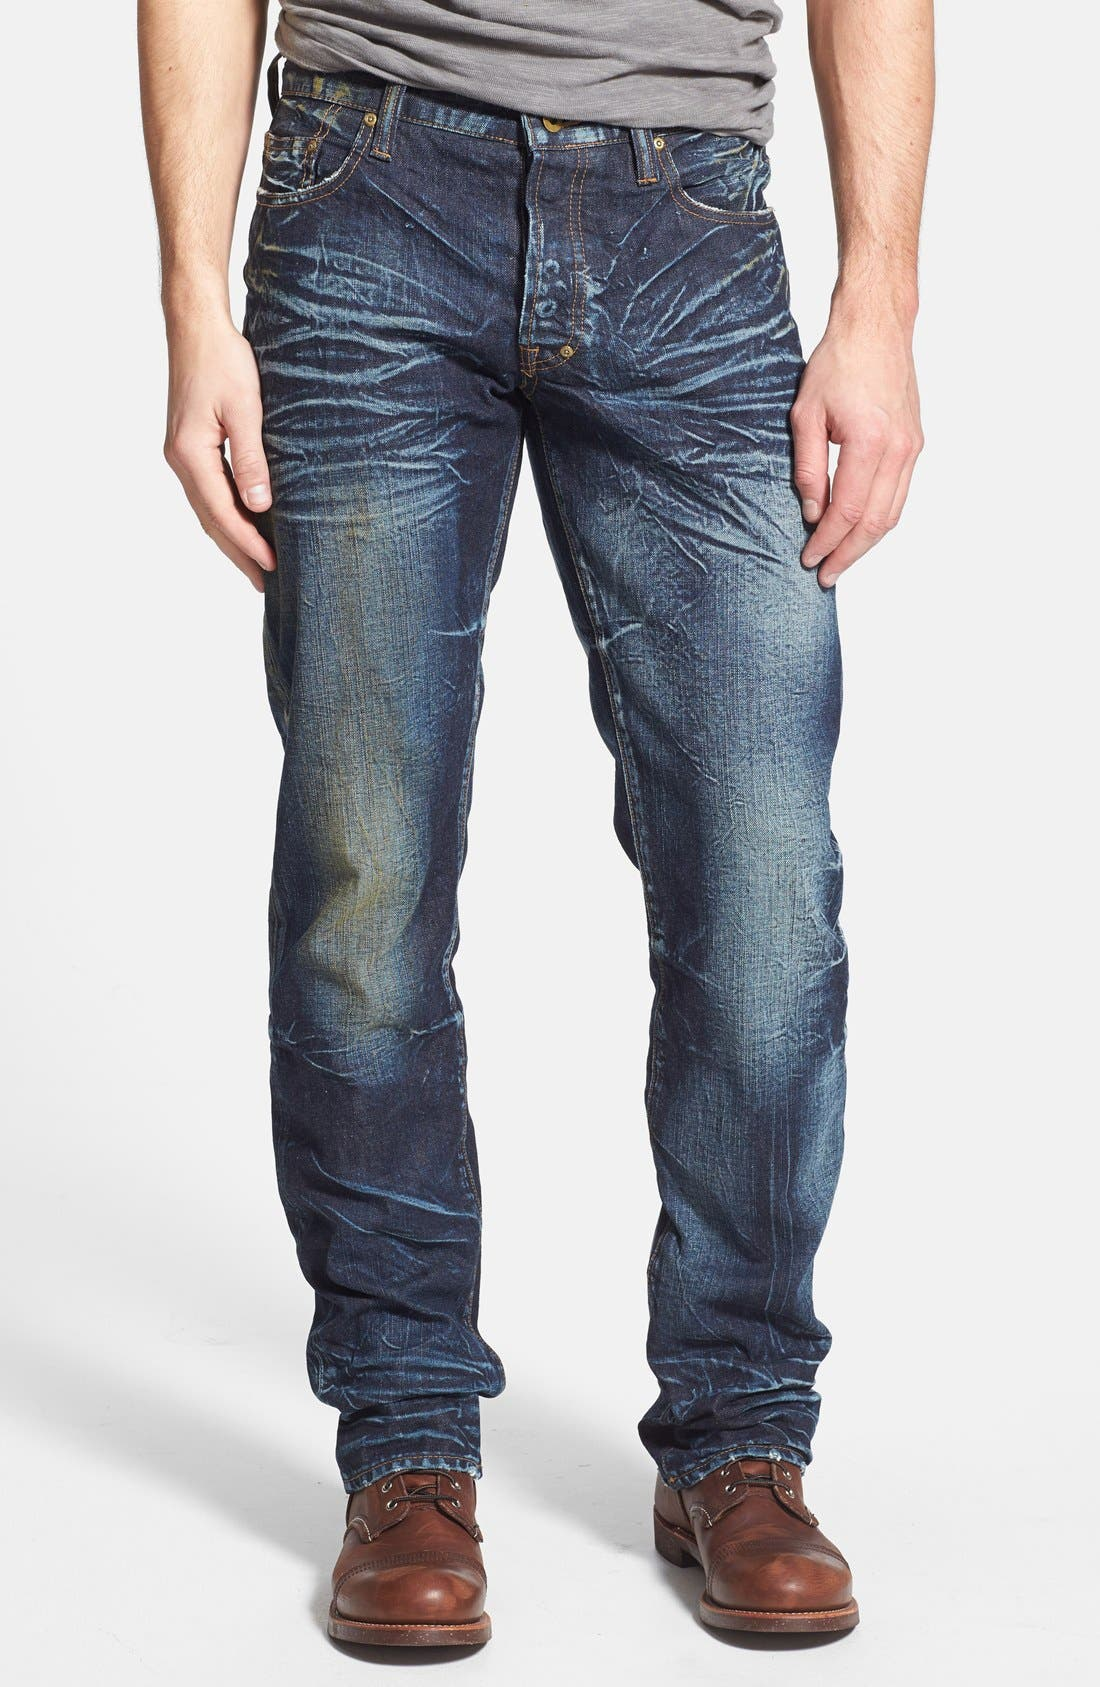 Main Image - PRPS 'Barracuda' Distressed Straight Leg Jeans (Winged Bat)